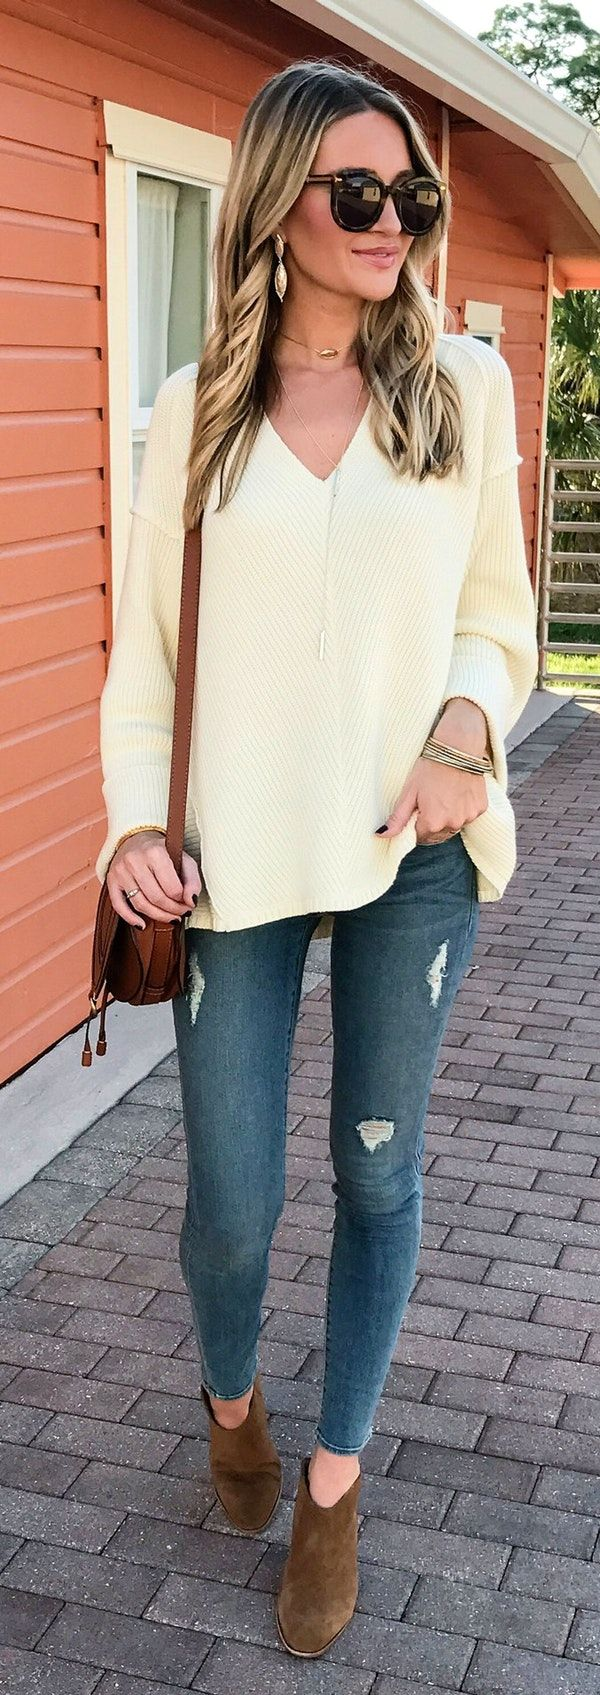 spring fashion White Knit & Ripped Skinny Jeans & Brown Suede Booties